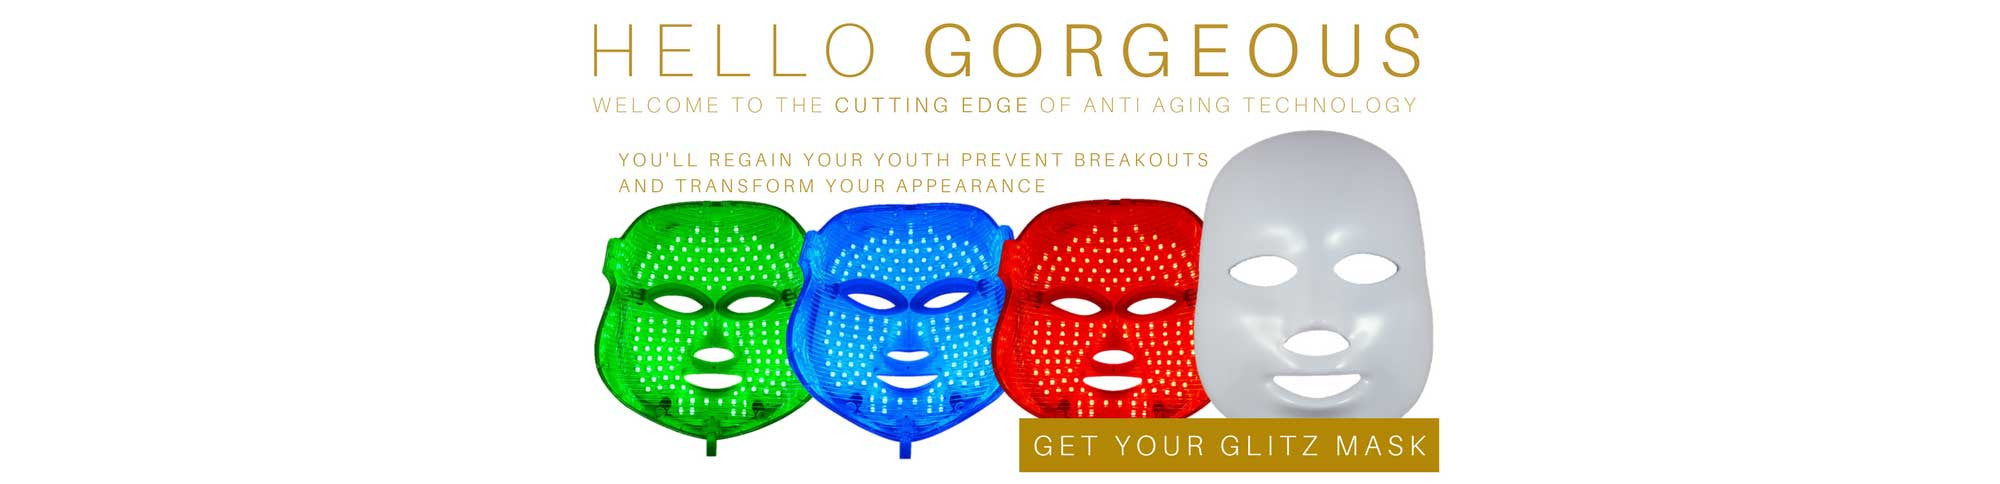 Welcome to the cutting edge of anti aging technology